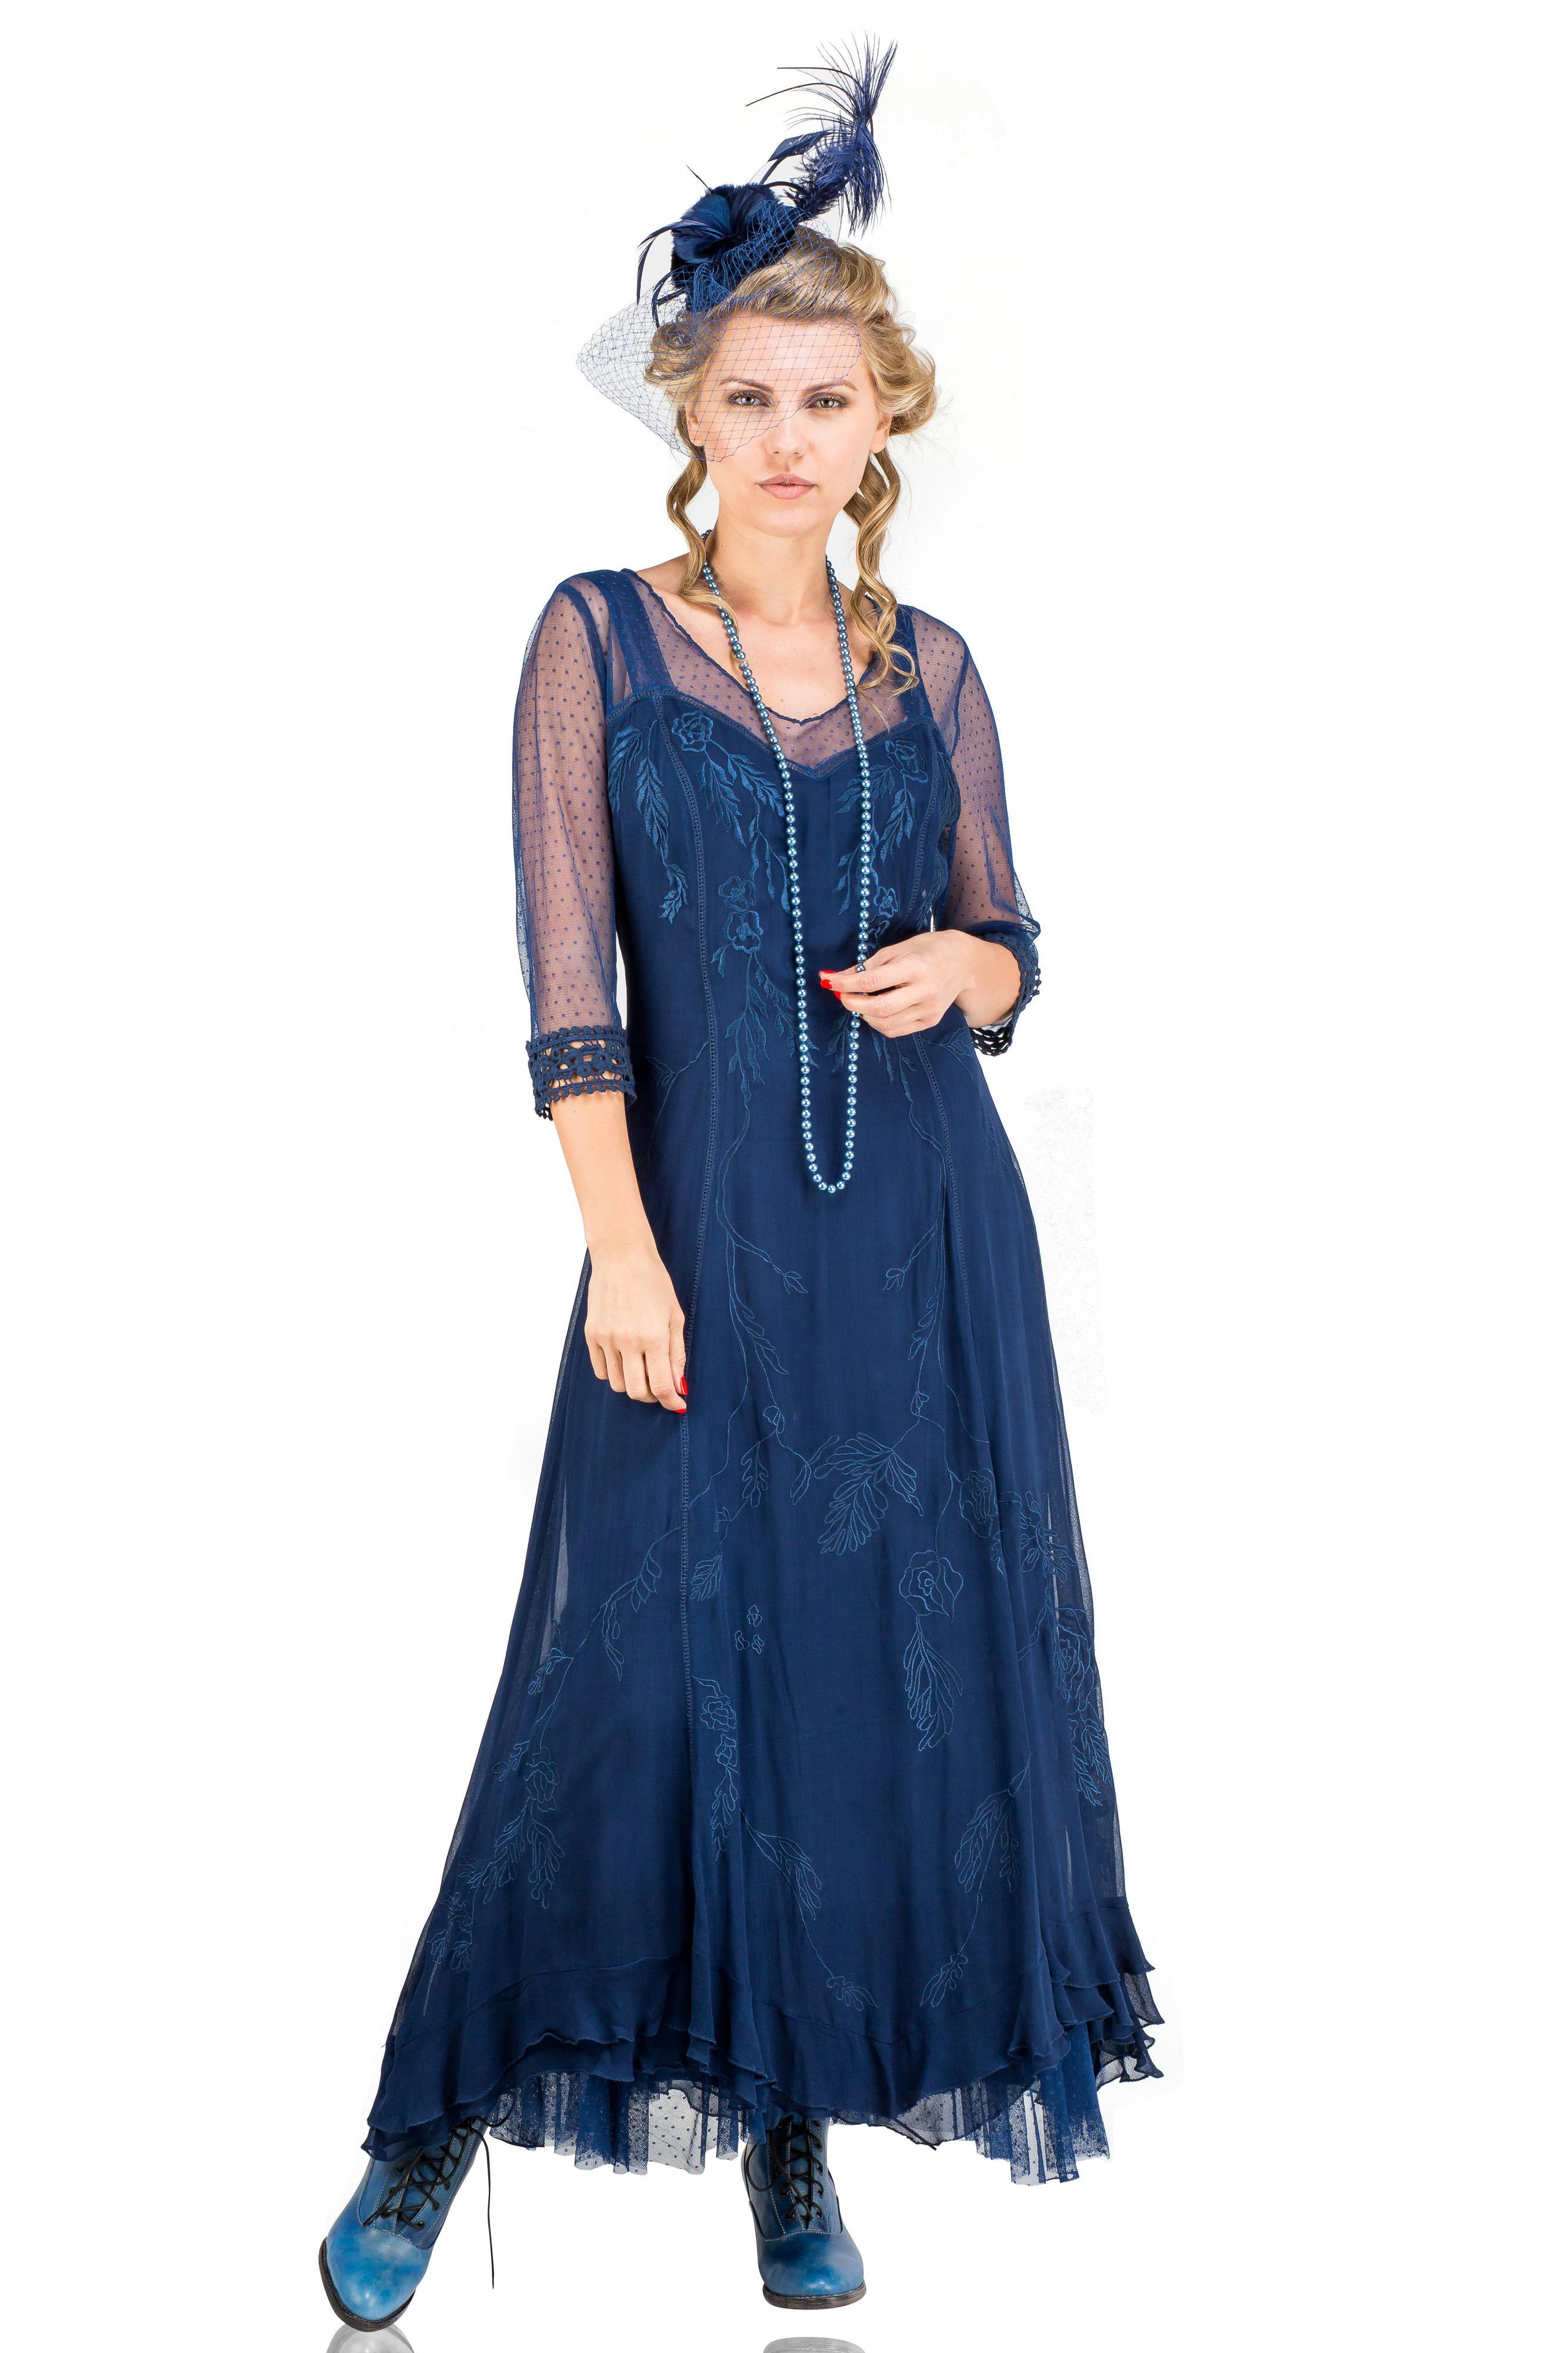 1920s Fashion & Clothing   Roaring 20s Attire Celine Vintage Style Wedding Gown in Royal Blue by Nataya $290.00 AT vintagedancer.com